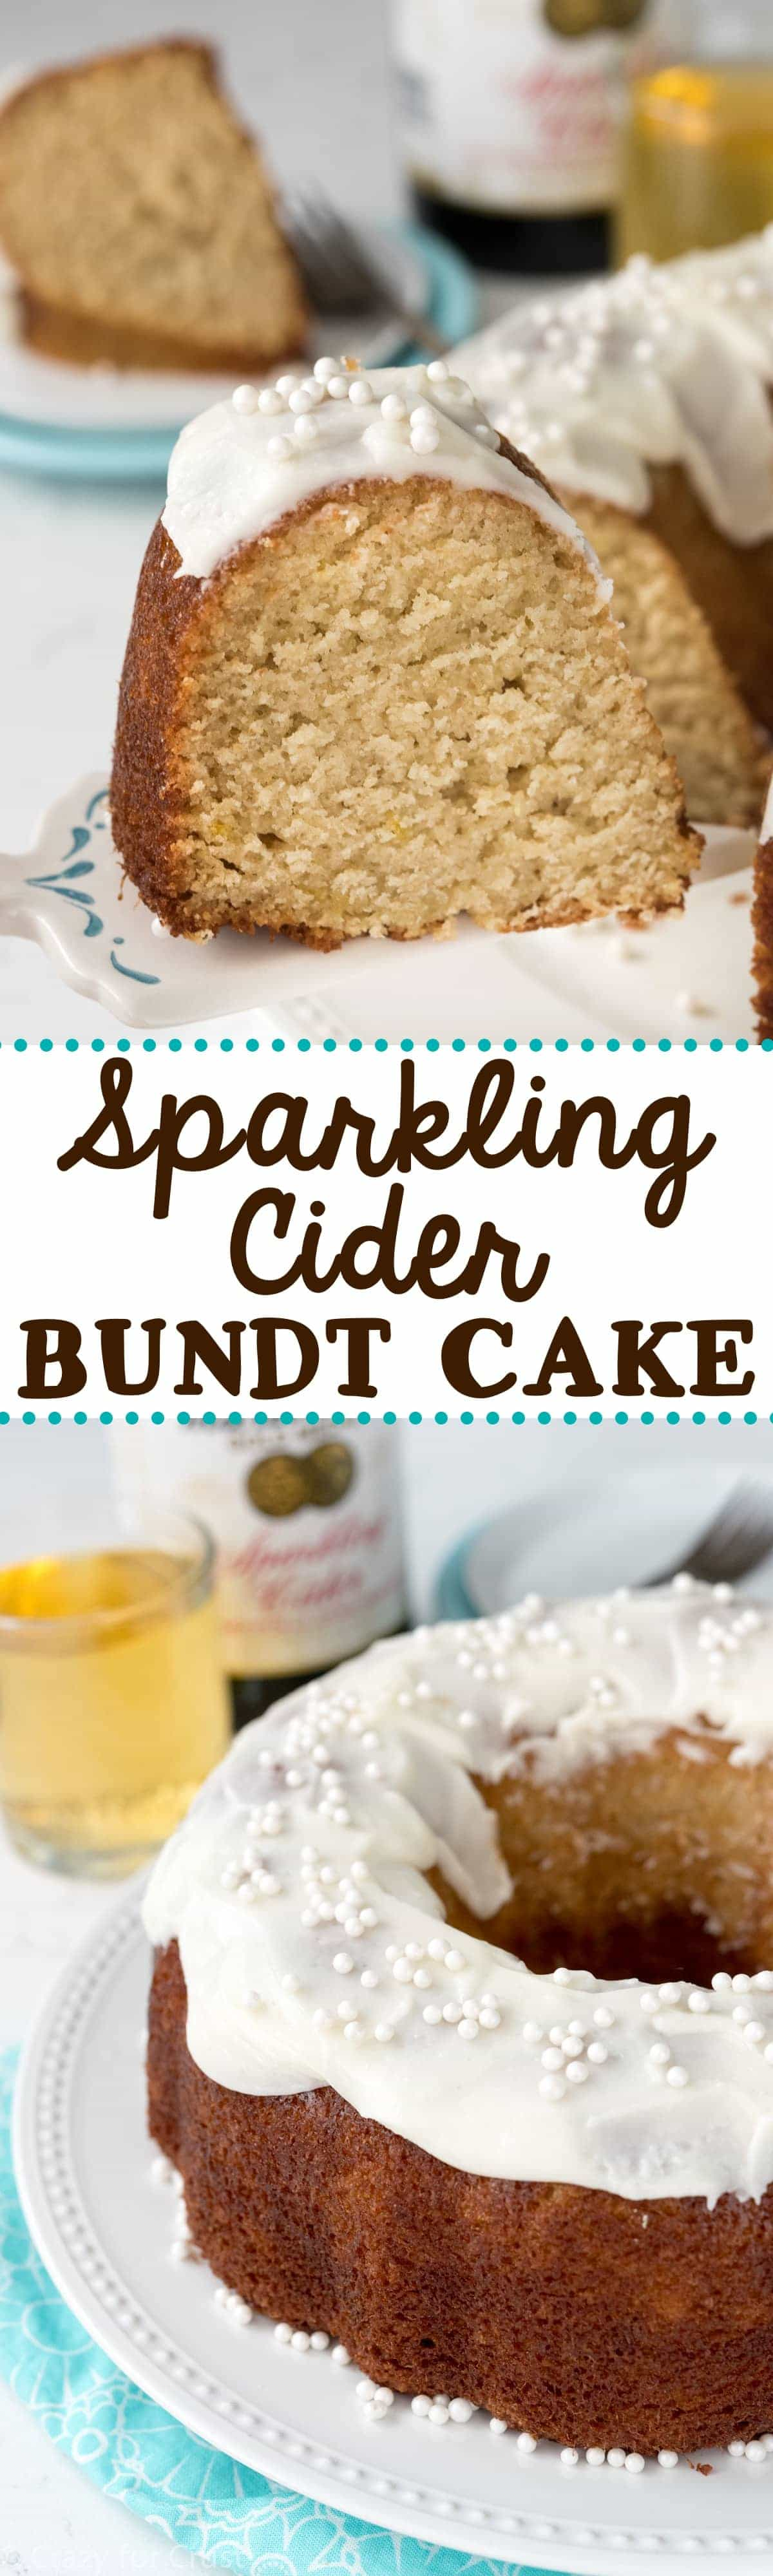 Sparkling Apple Cider Cake - this easy recipe uses Sparkling Apple Cider in every part of the recipe! Perfect for a party!